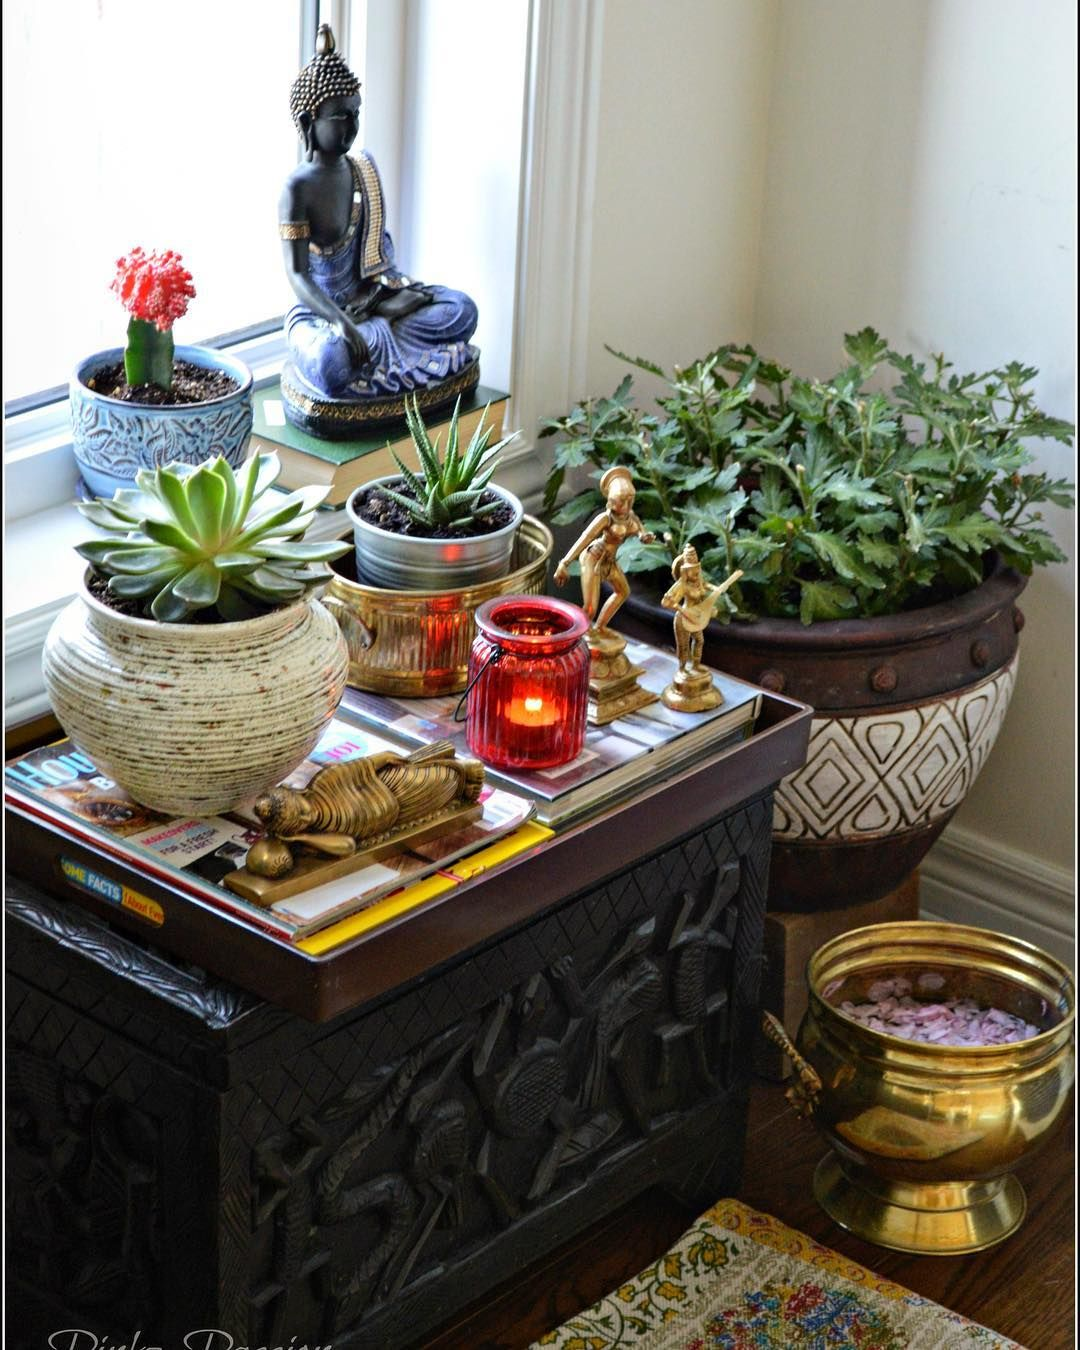 Home Garden Design Ideas India: Indoor Garden, Zen Place, Buddha Corner, Indoor Plants